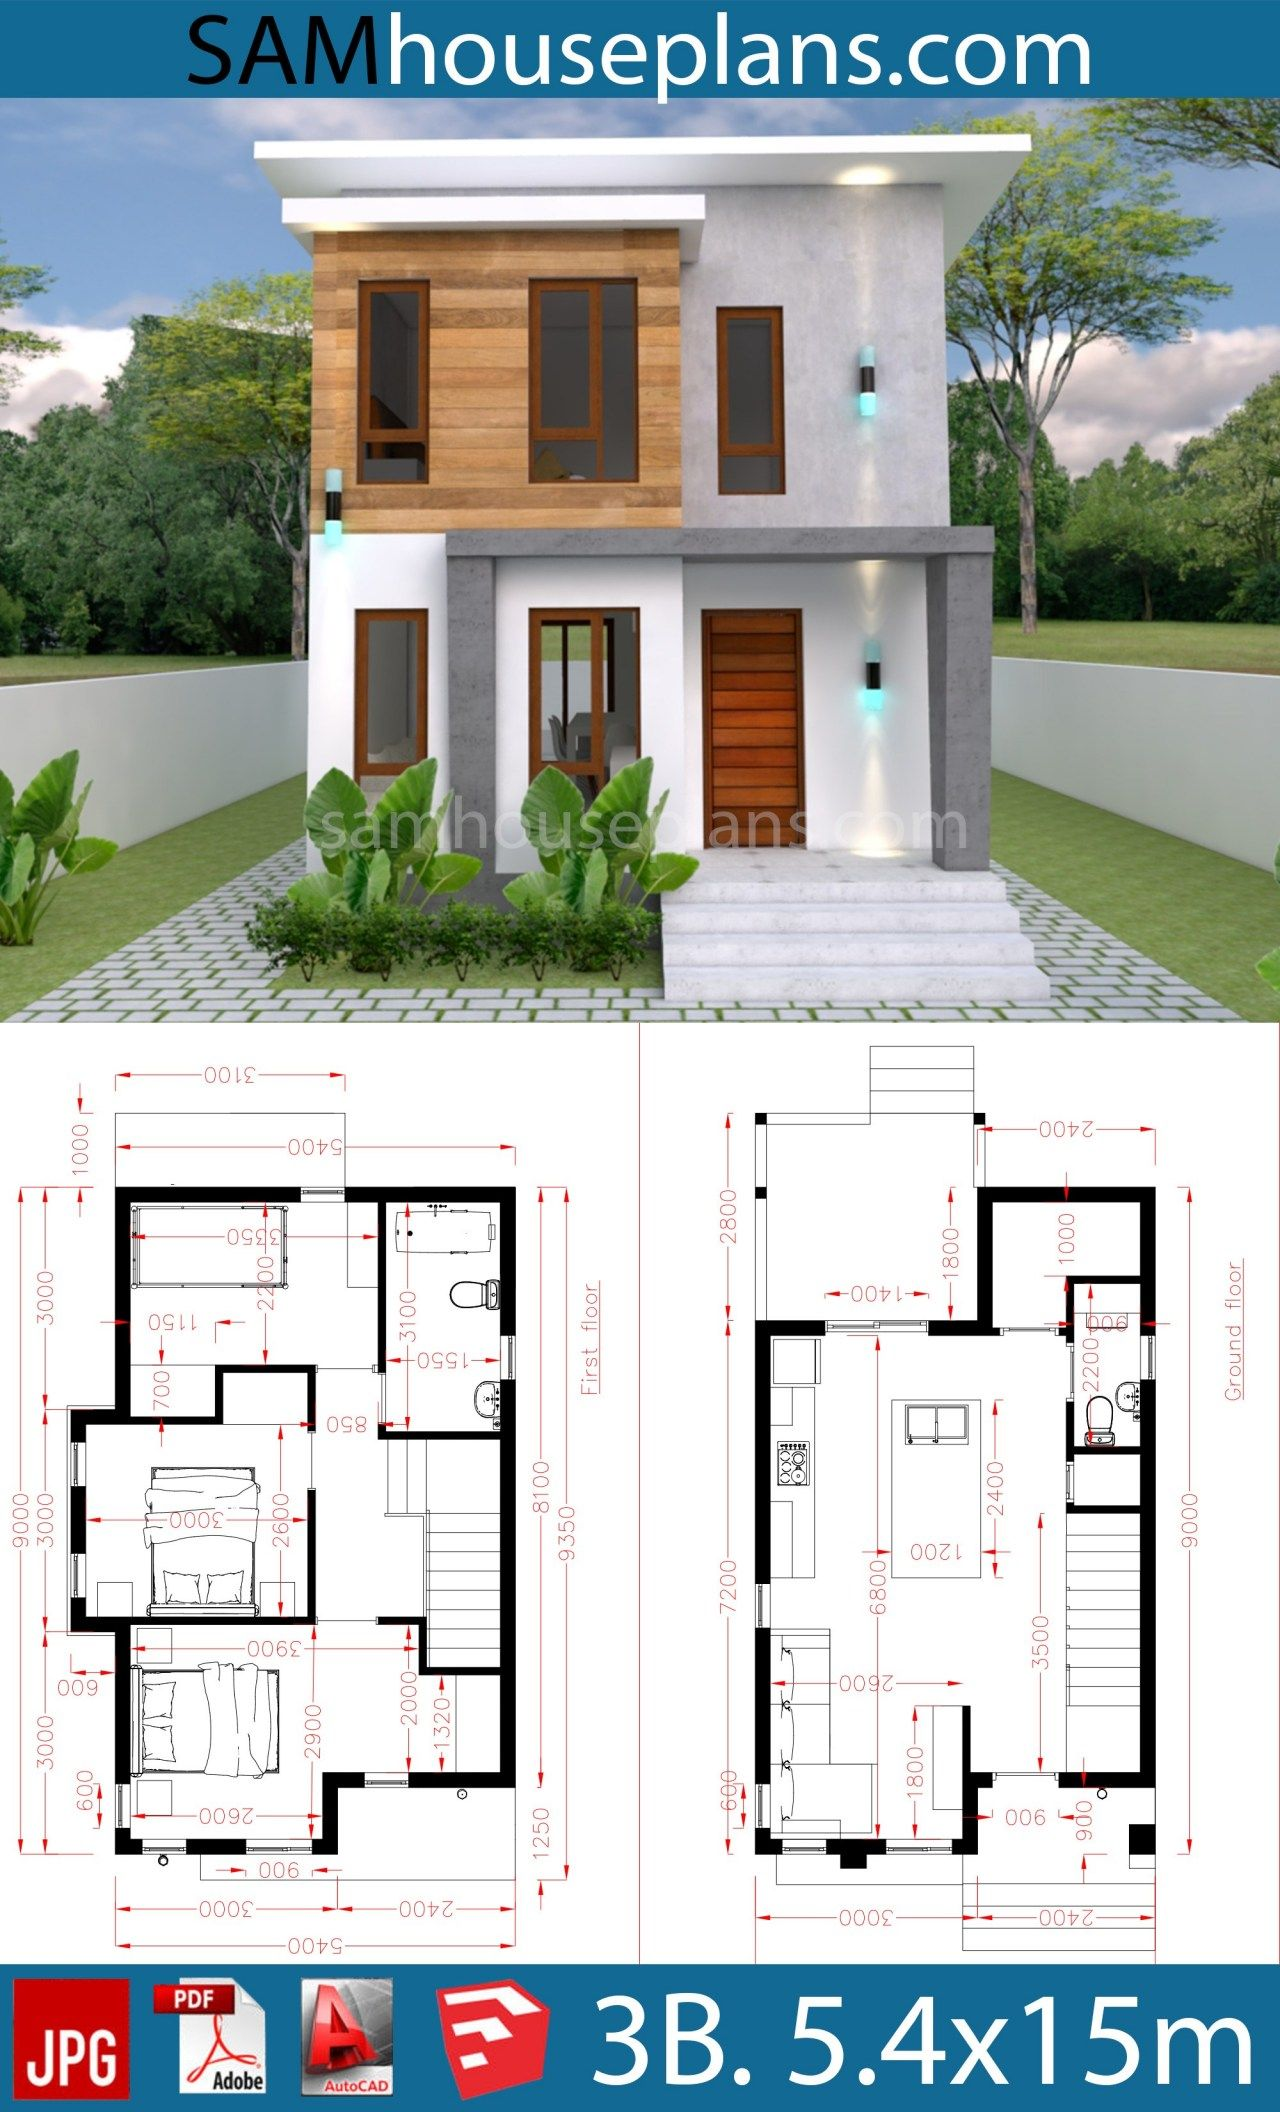 House Plans 12.12x12m with 12 Bedroom   Sam House Plans   Dream house ...